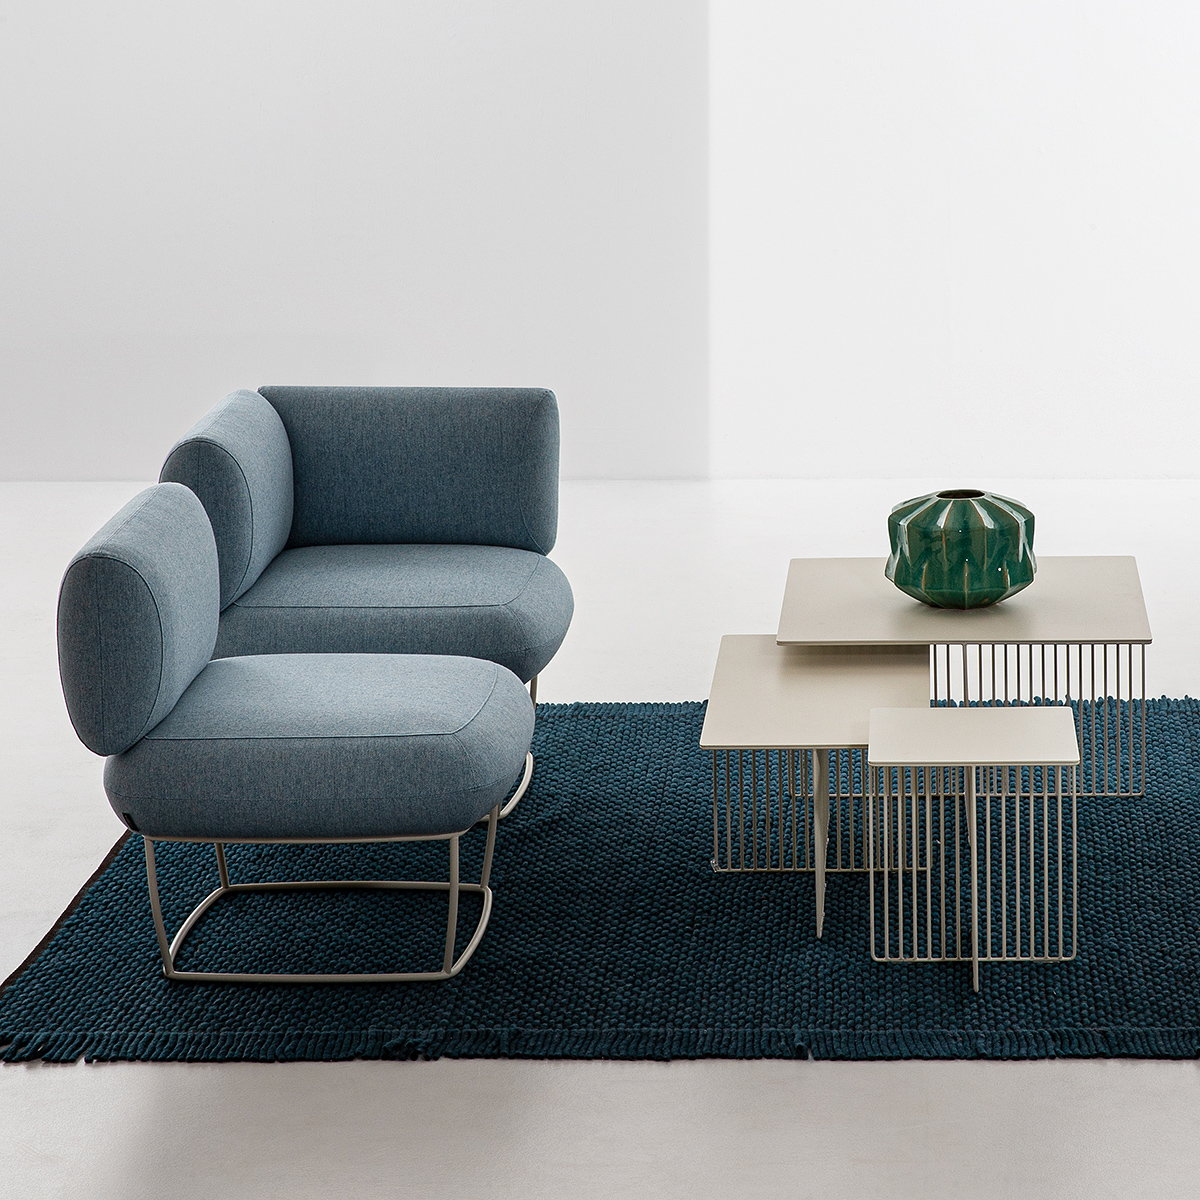 Nina Mair Designs Bernard Collection for La Cividina